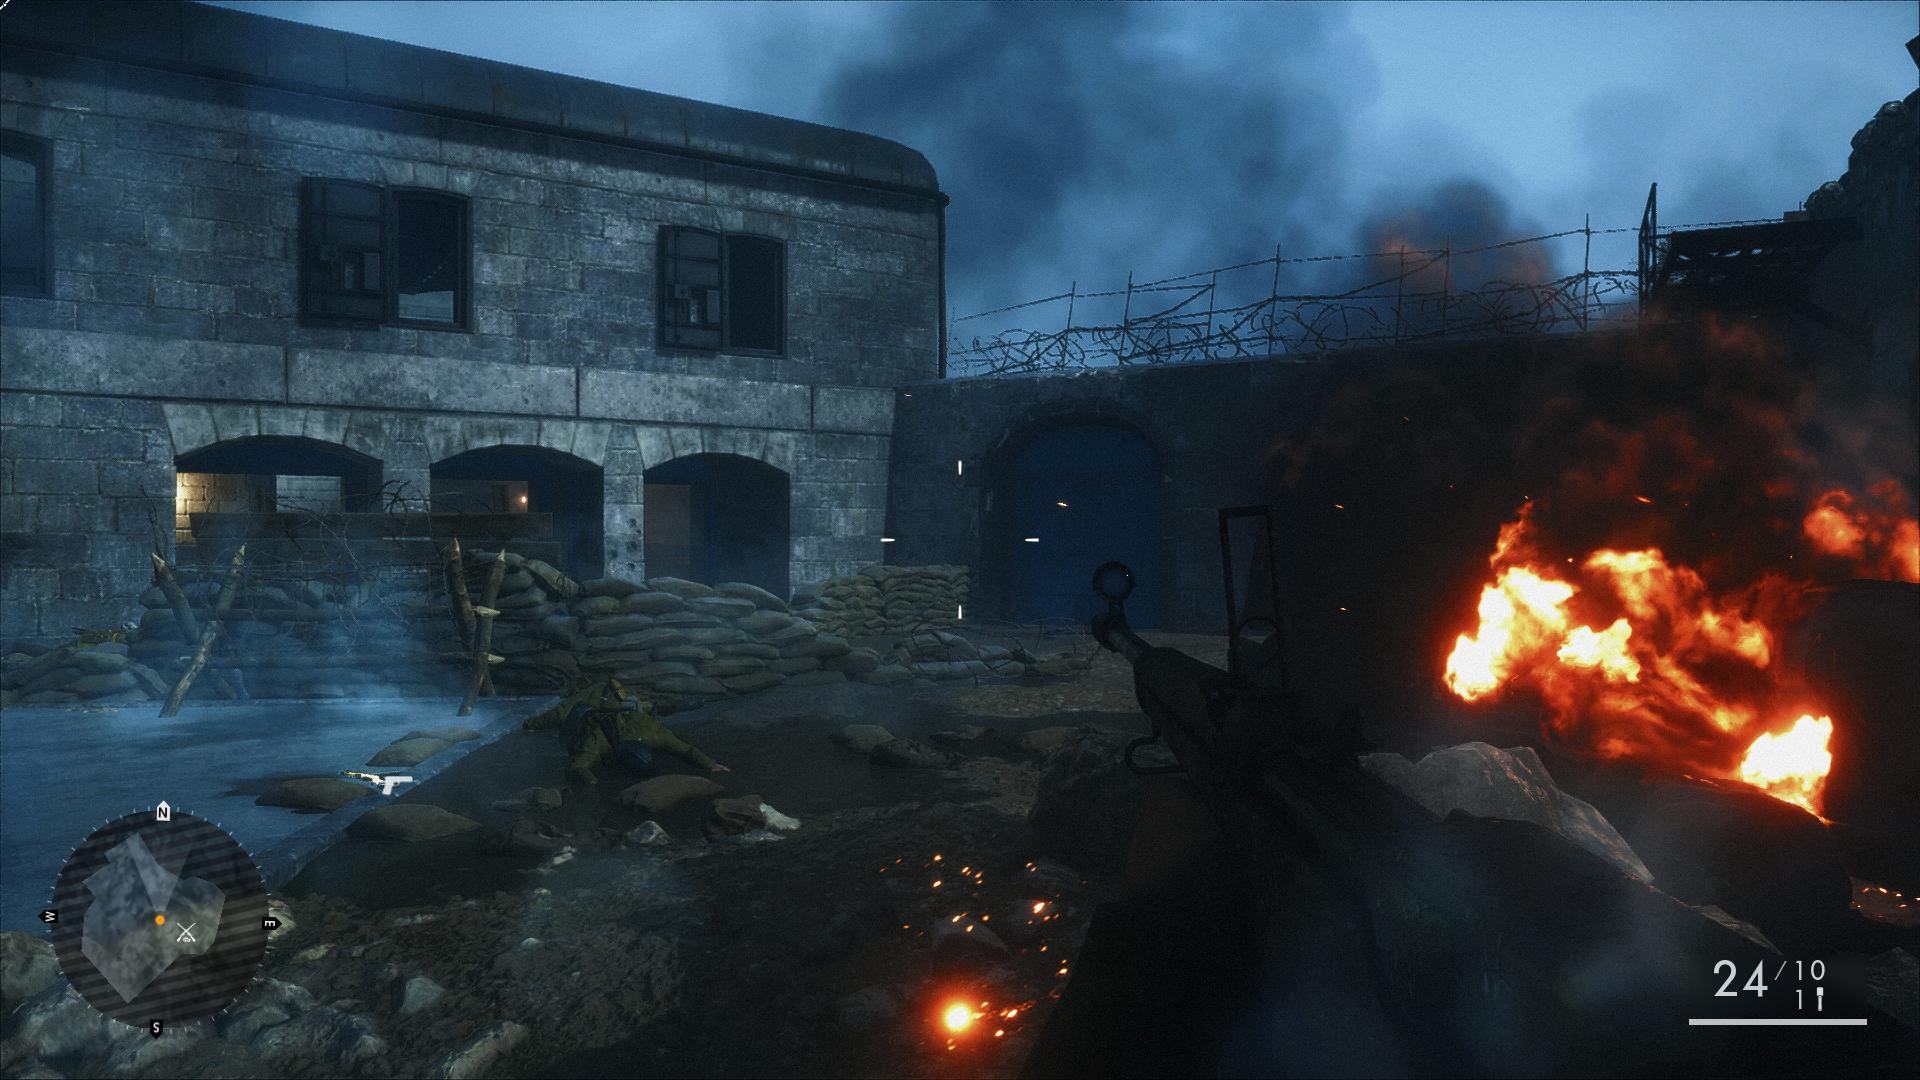 Avanti Savoia Reflections On The Battlefield 1 Campaign The